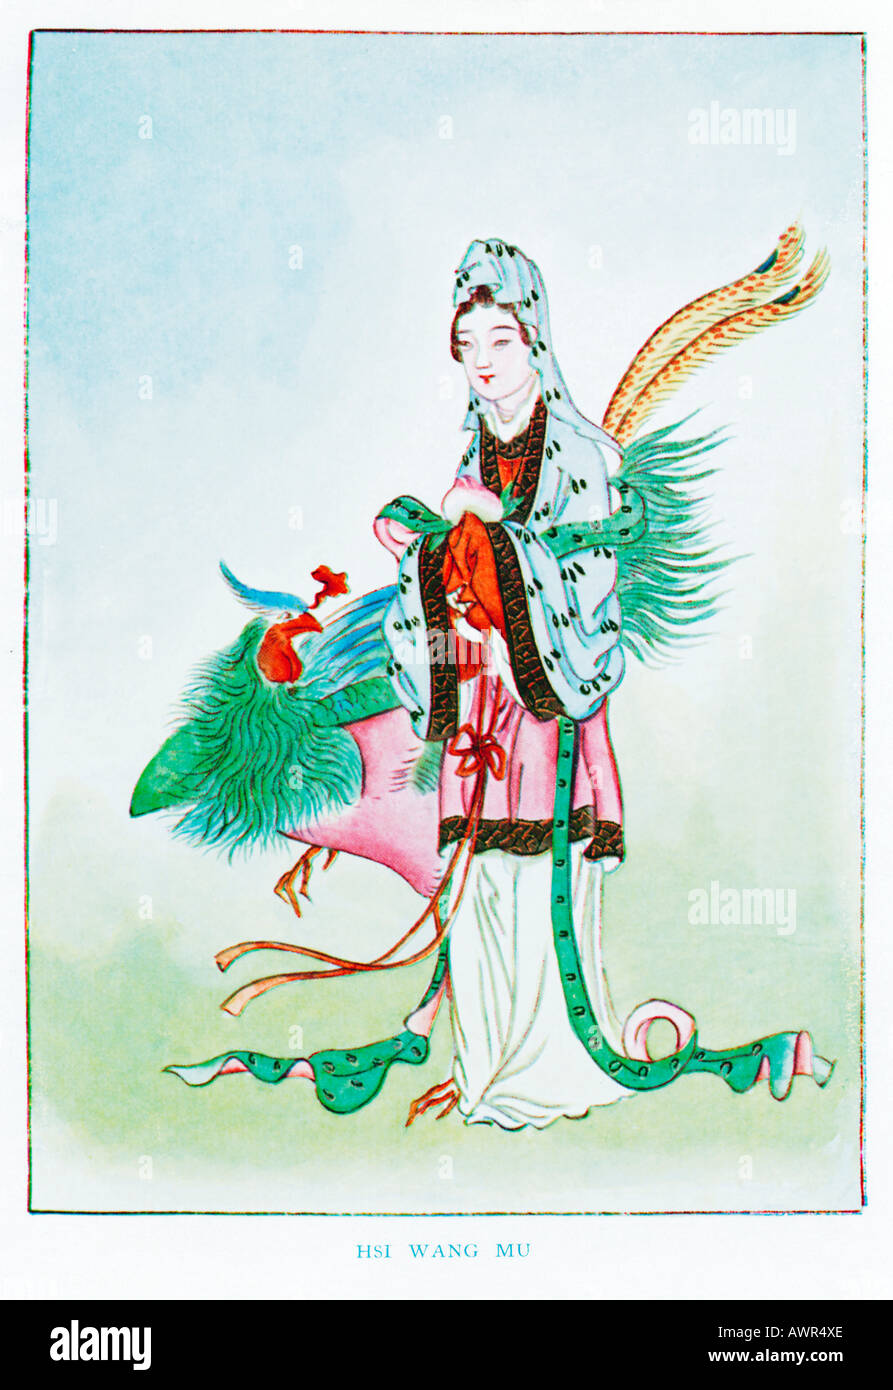 Hsi Wang Mu The Golden Mother Of The Tortoise 1920s illustration from a book on Myths and Legends of China - Stock Image